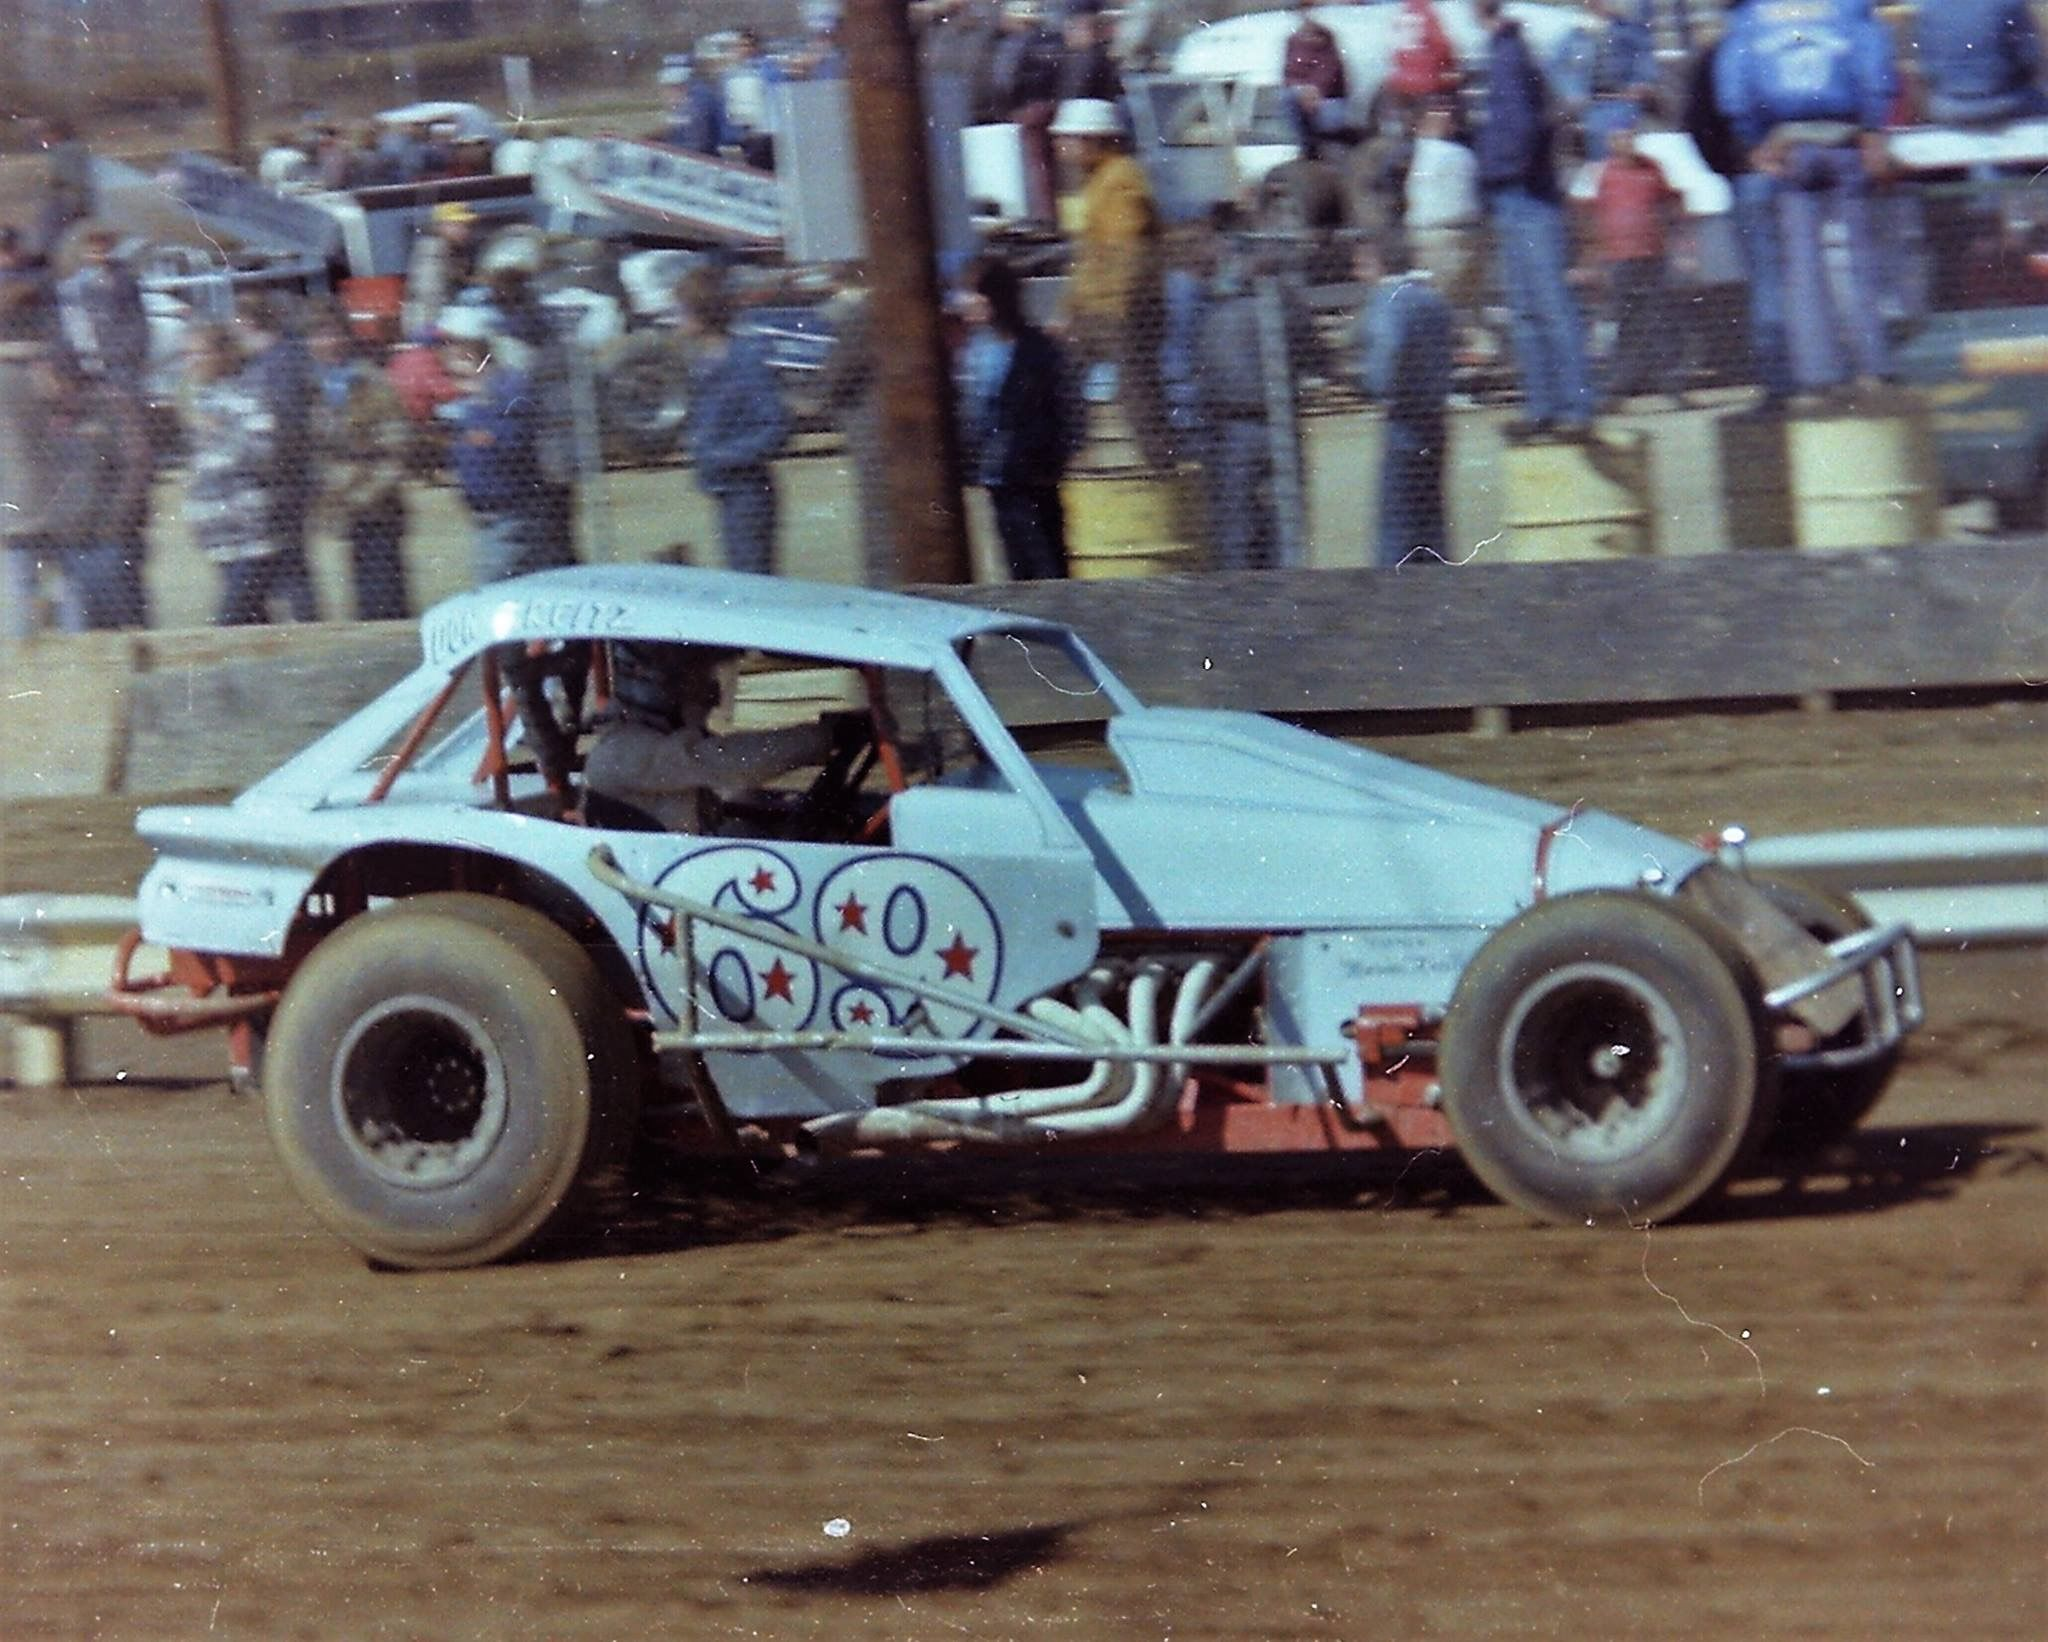 Pin by Jeff Swartz on Racing | Pinterest | Dirt track, Vintage ...